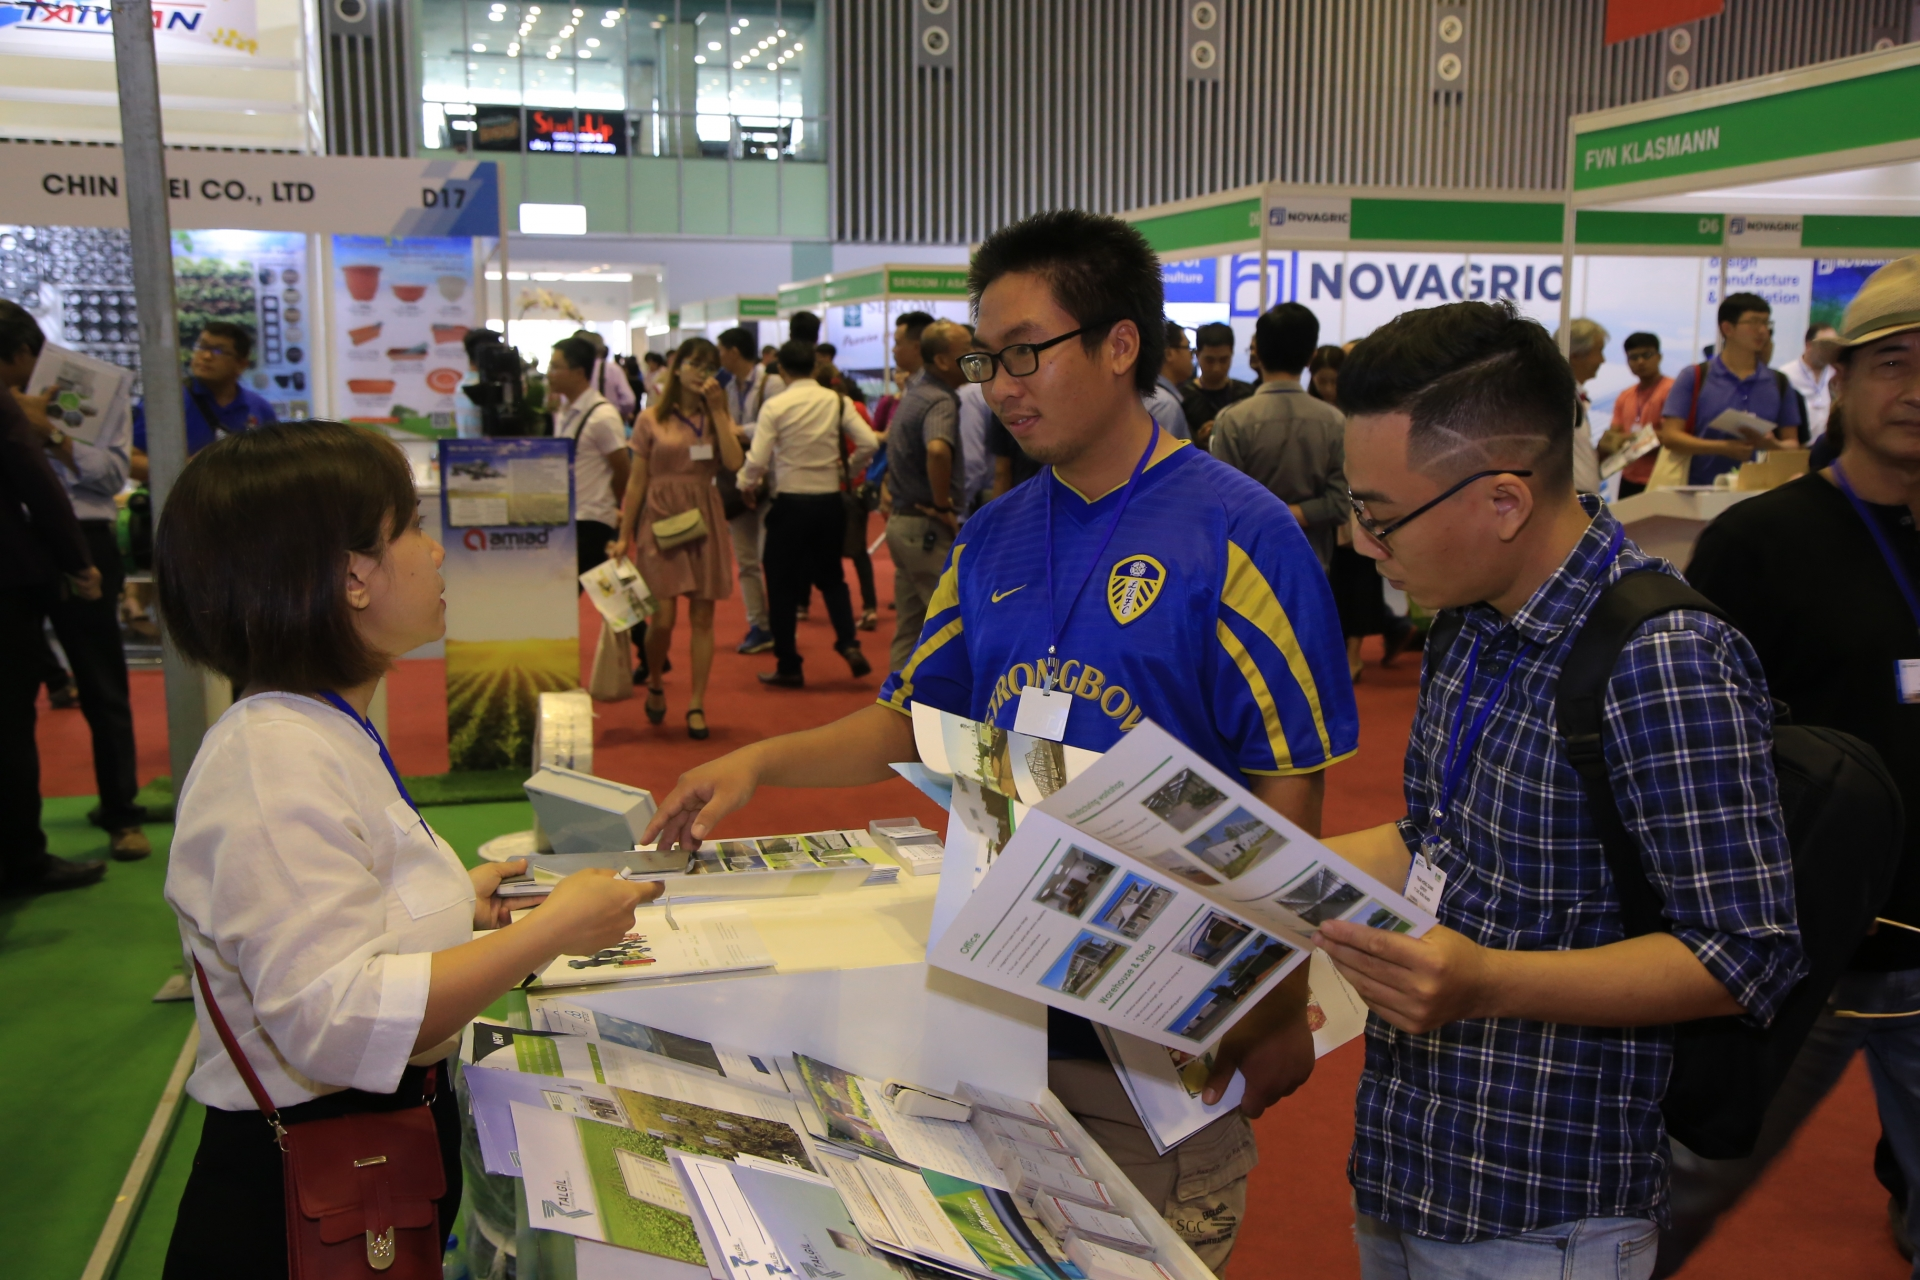 Suppliers eye Vietnam's horticulture and floriculture sector